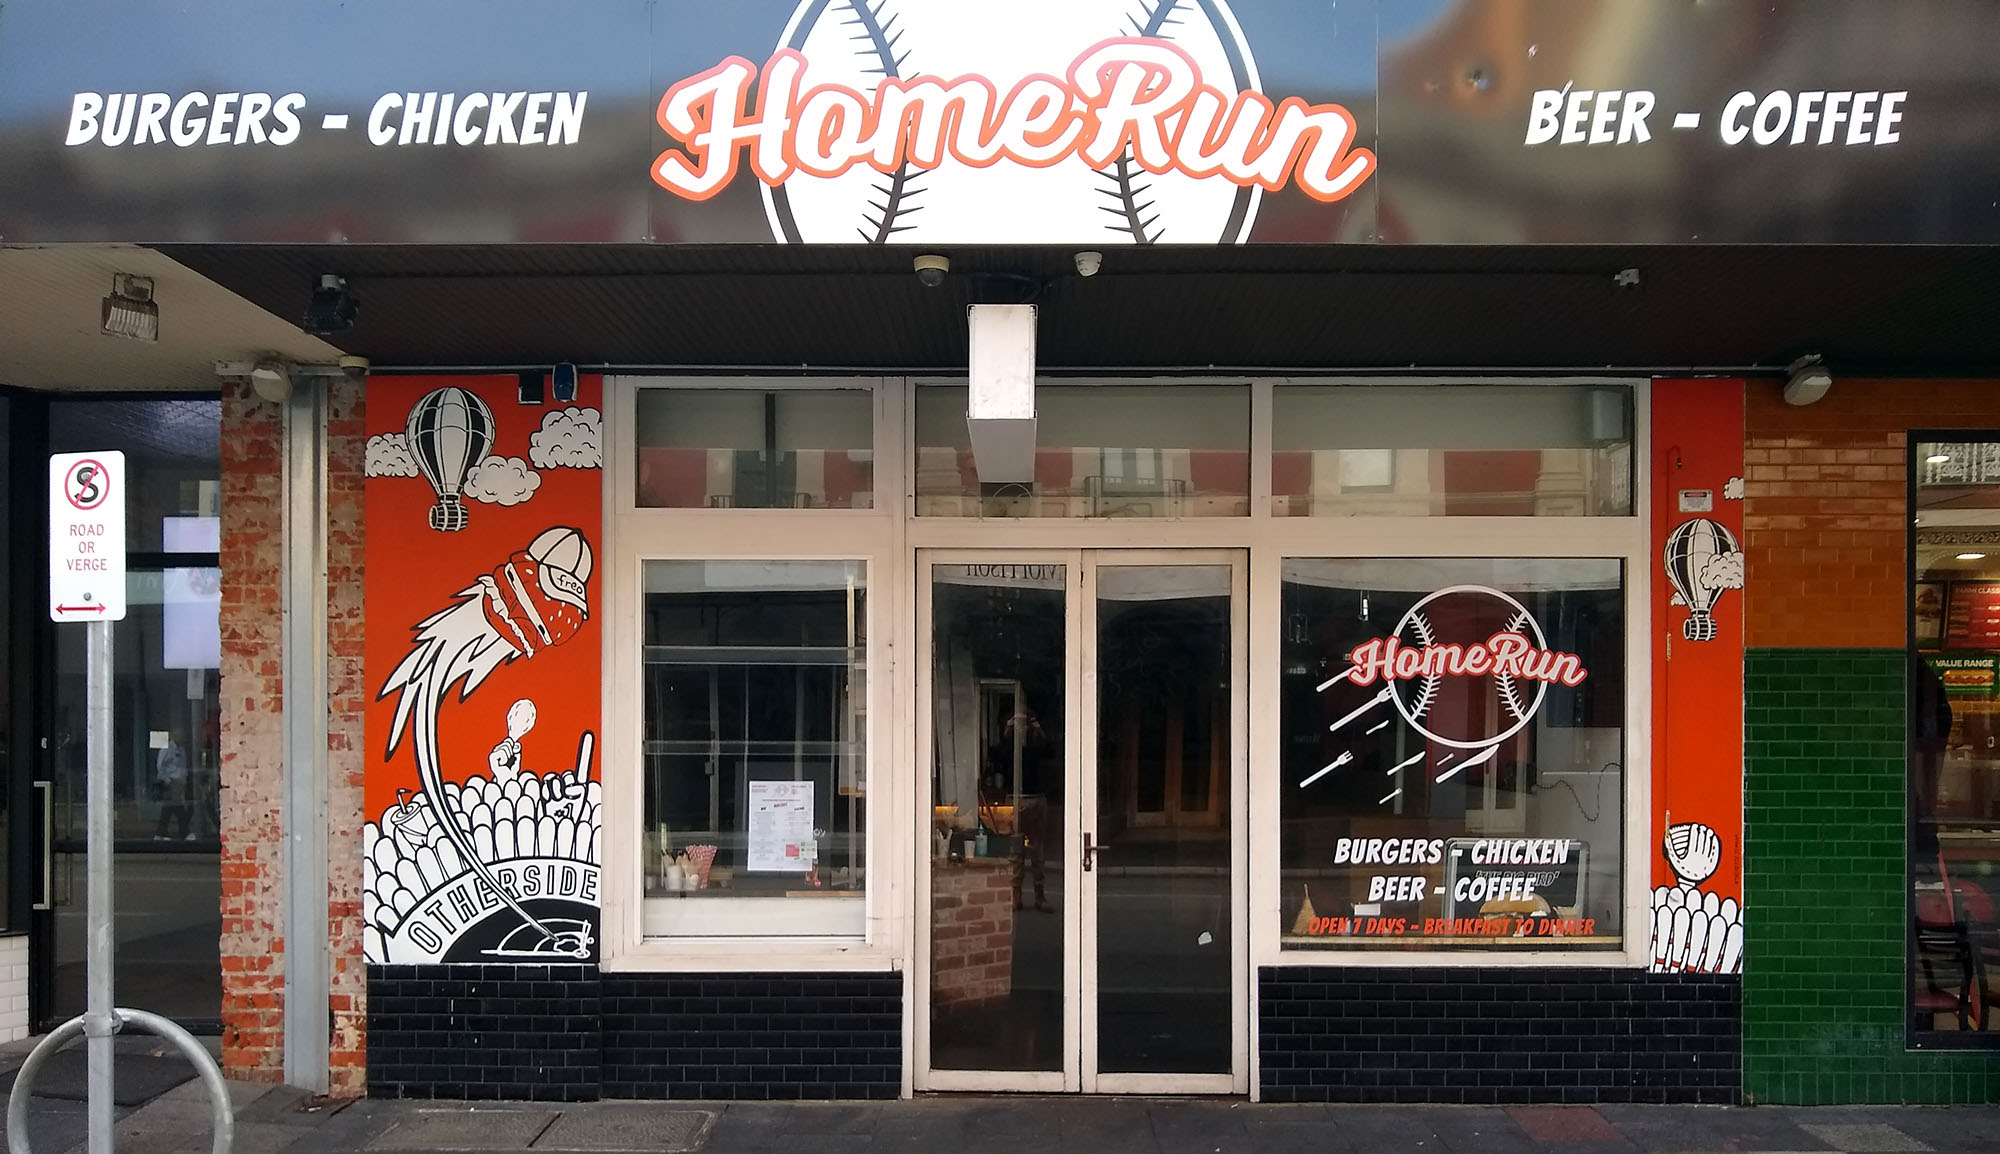 Mural of baseball burger being hit for a homerun on the front of a burger shop.